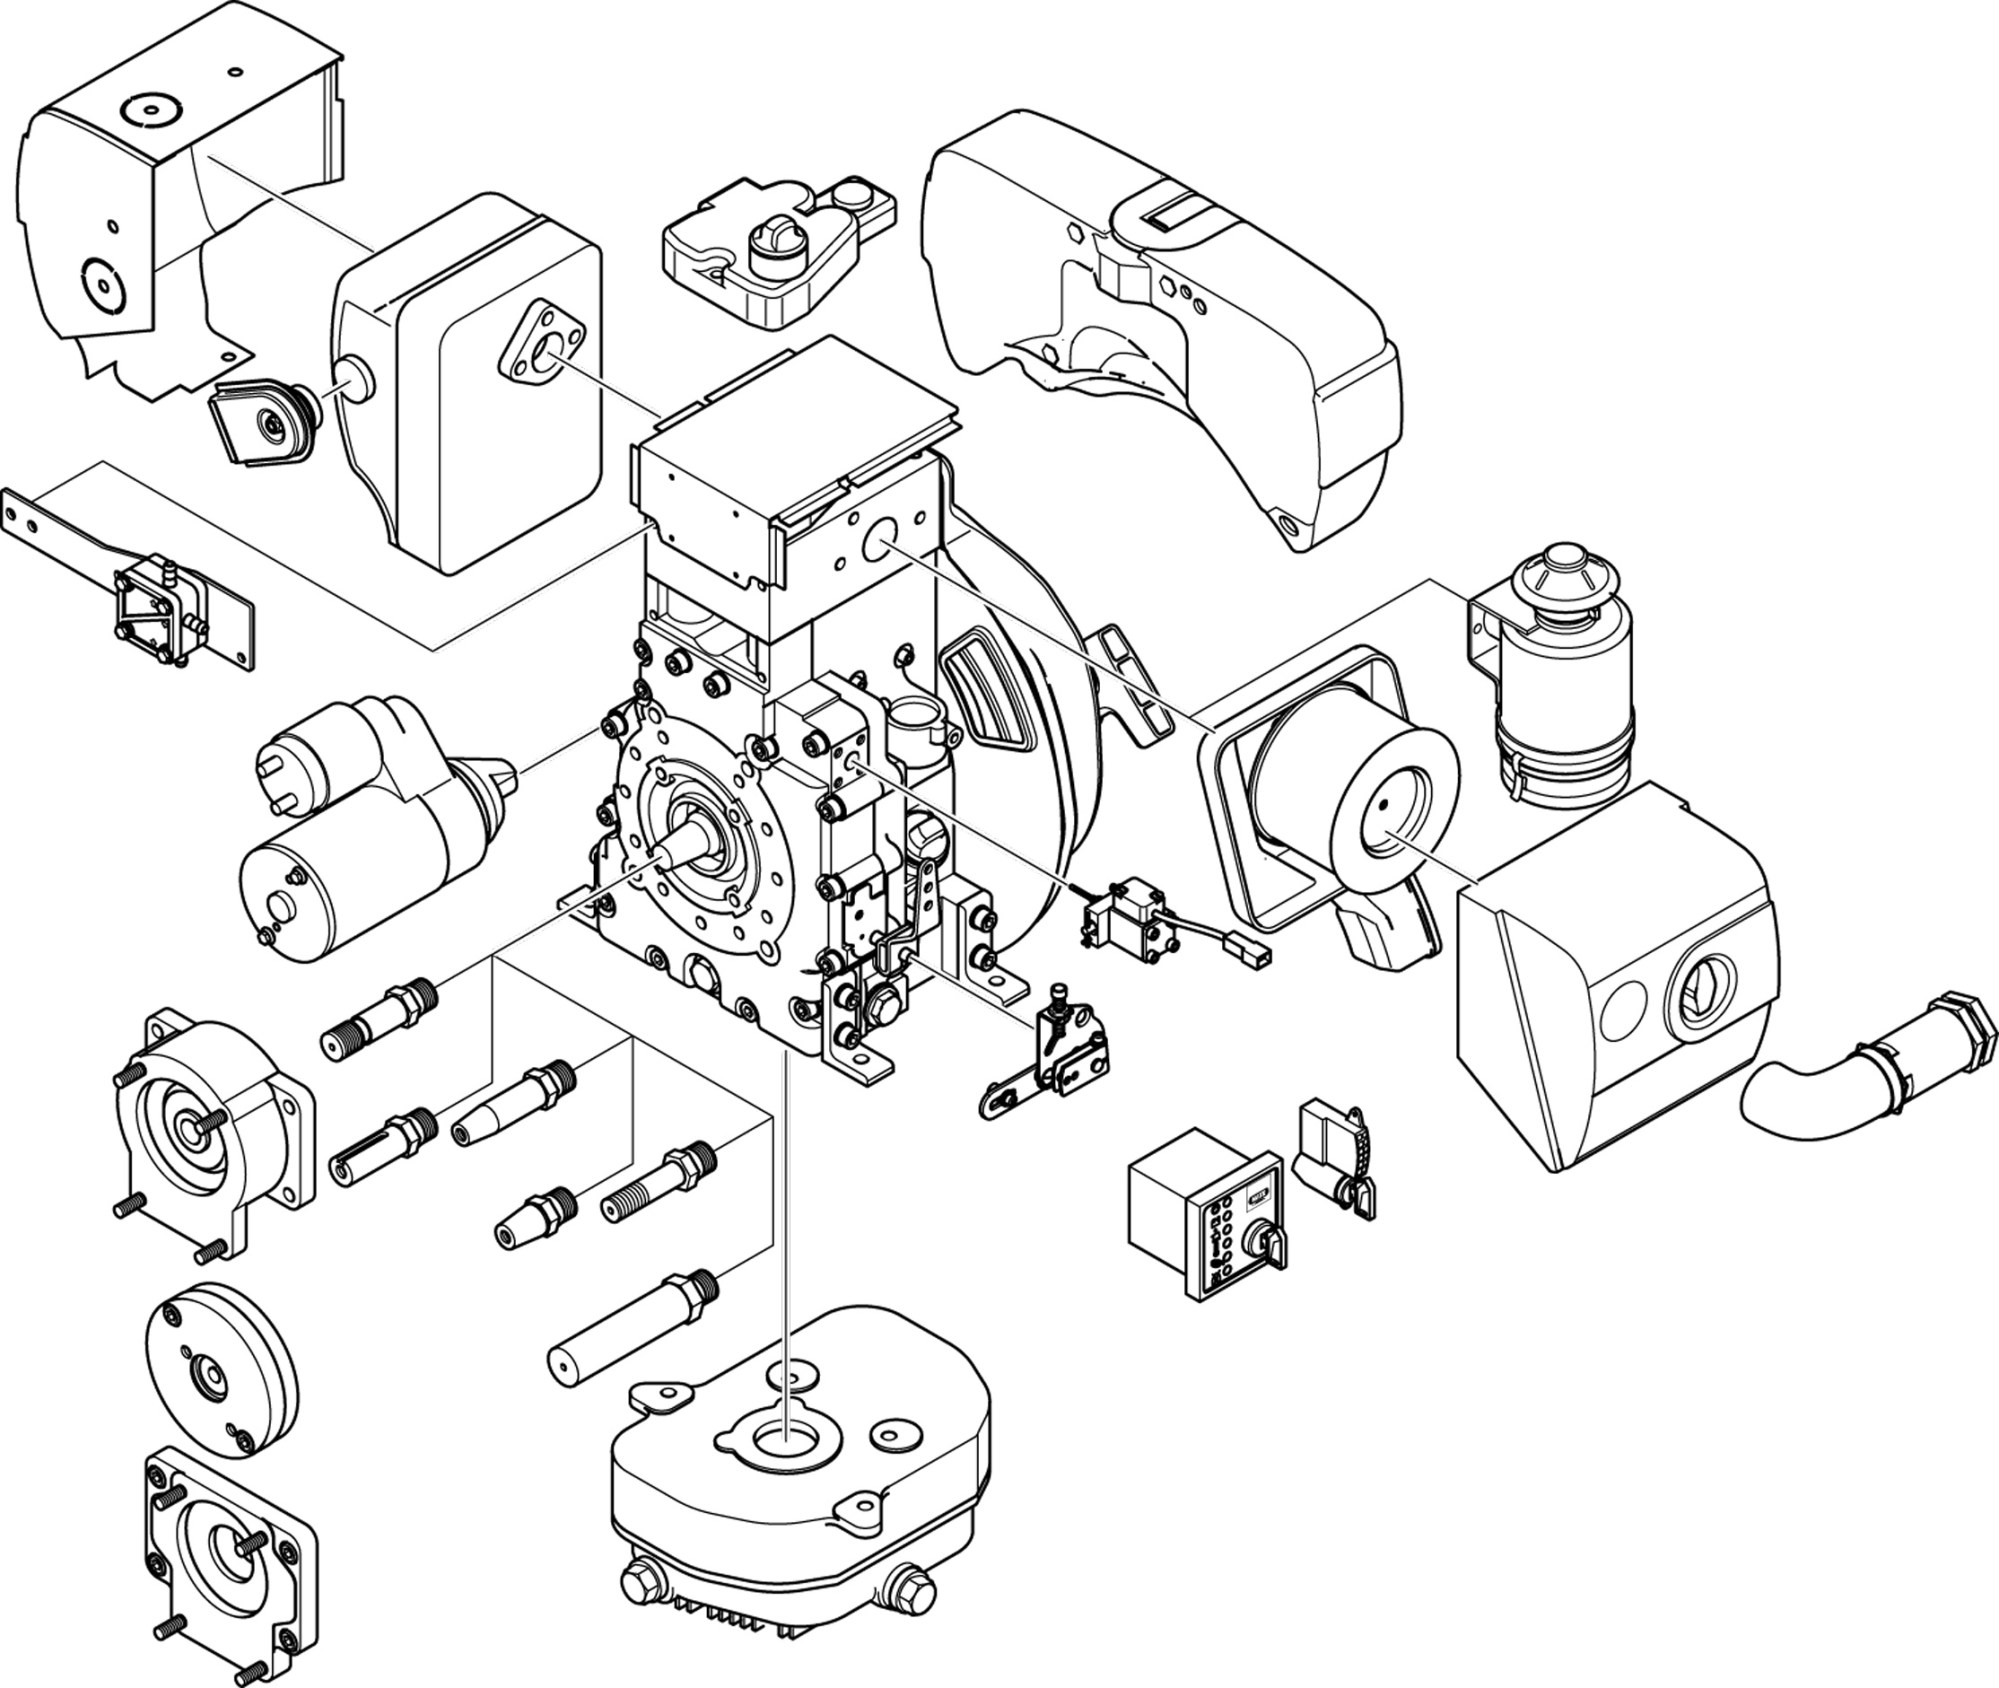 hight resolution of engine parts drawing